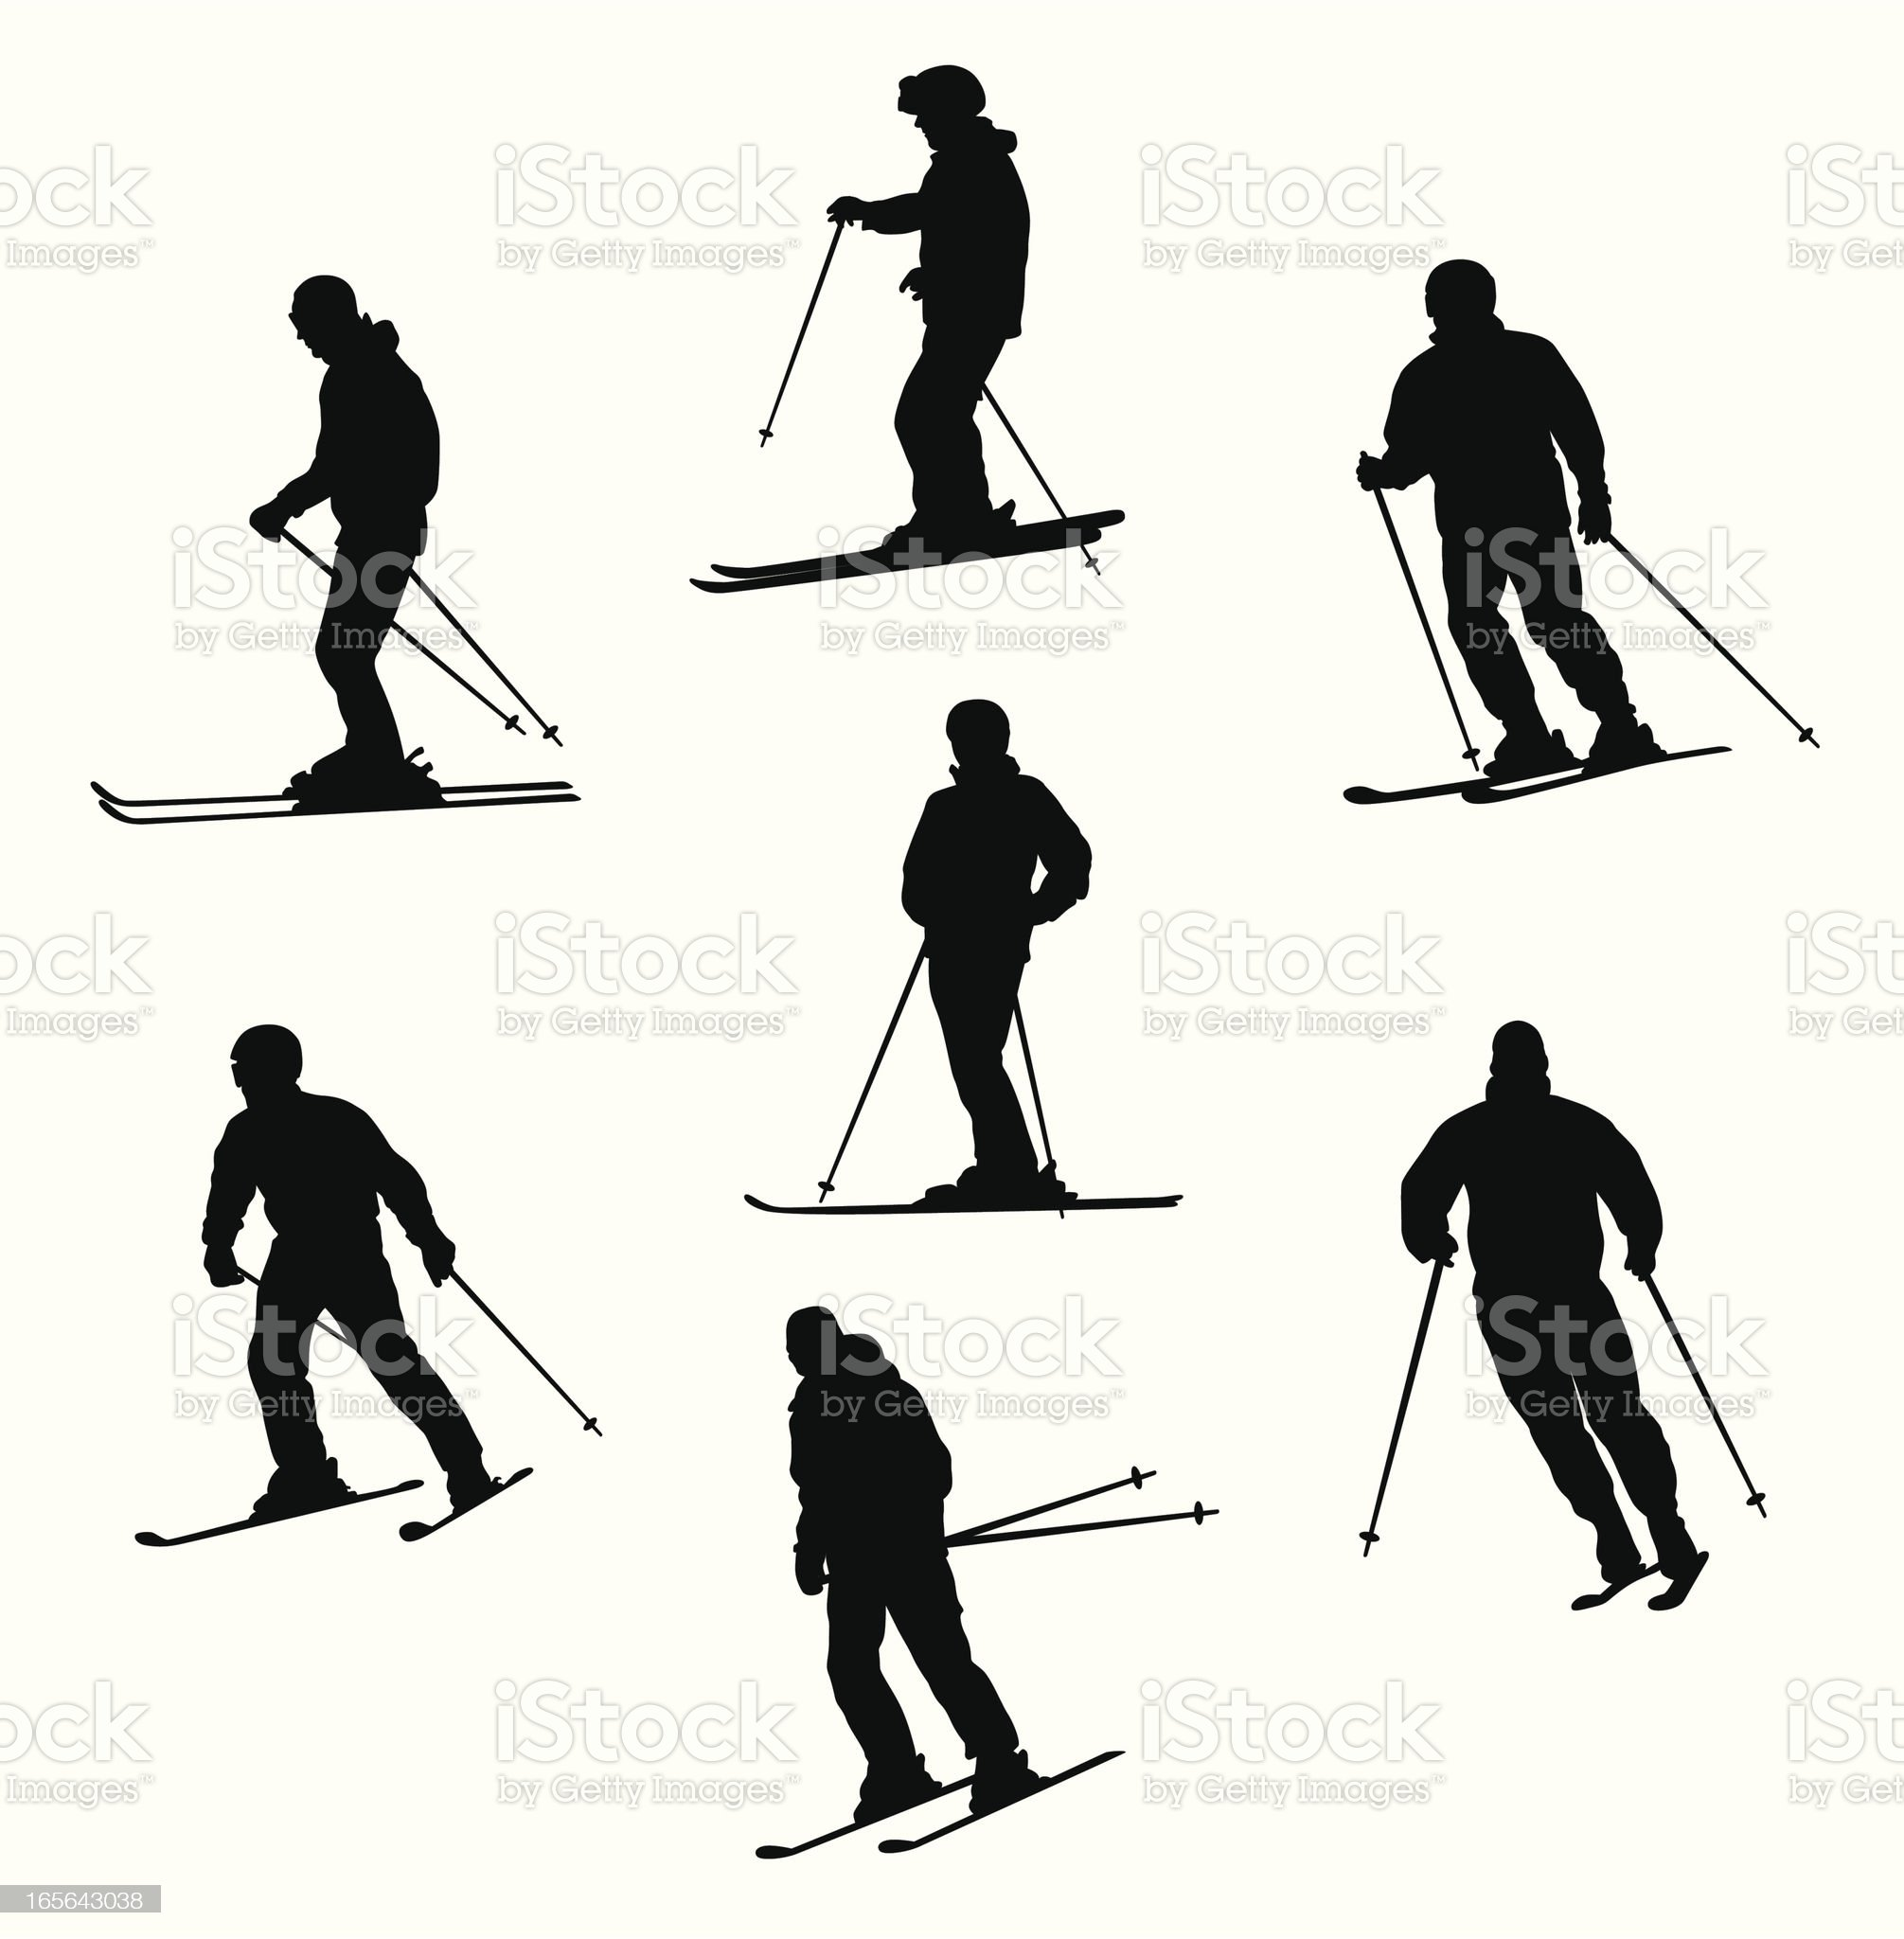 Skiers Vector Silhouette royalty-free stock vector art